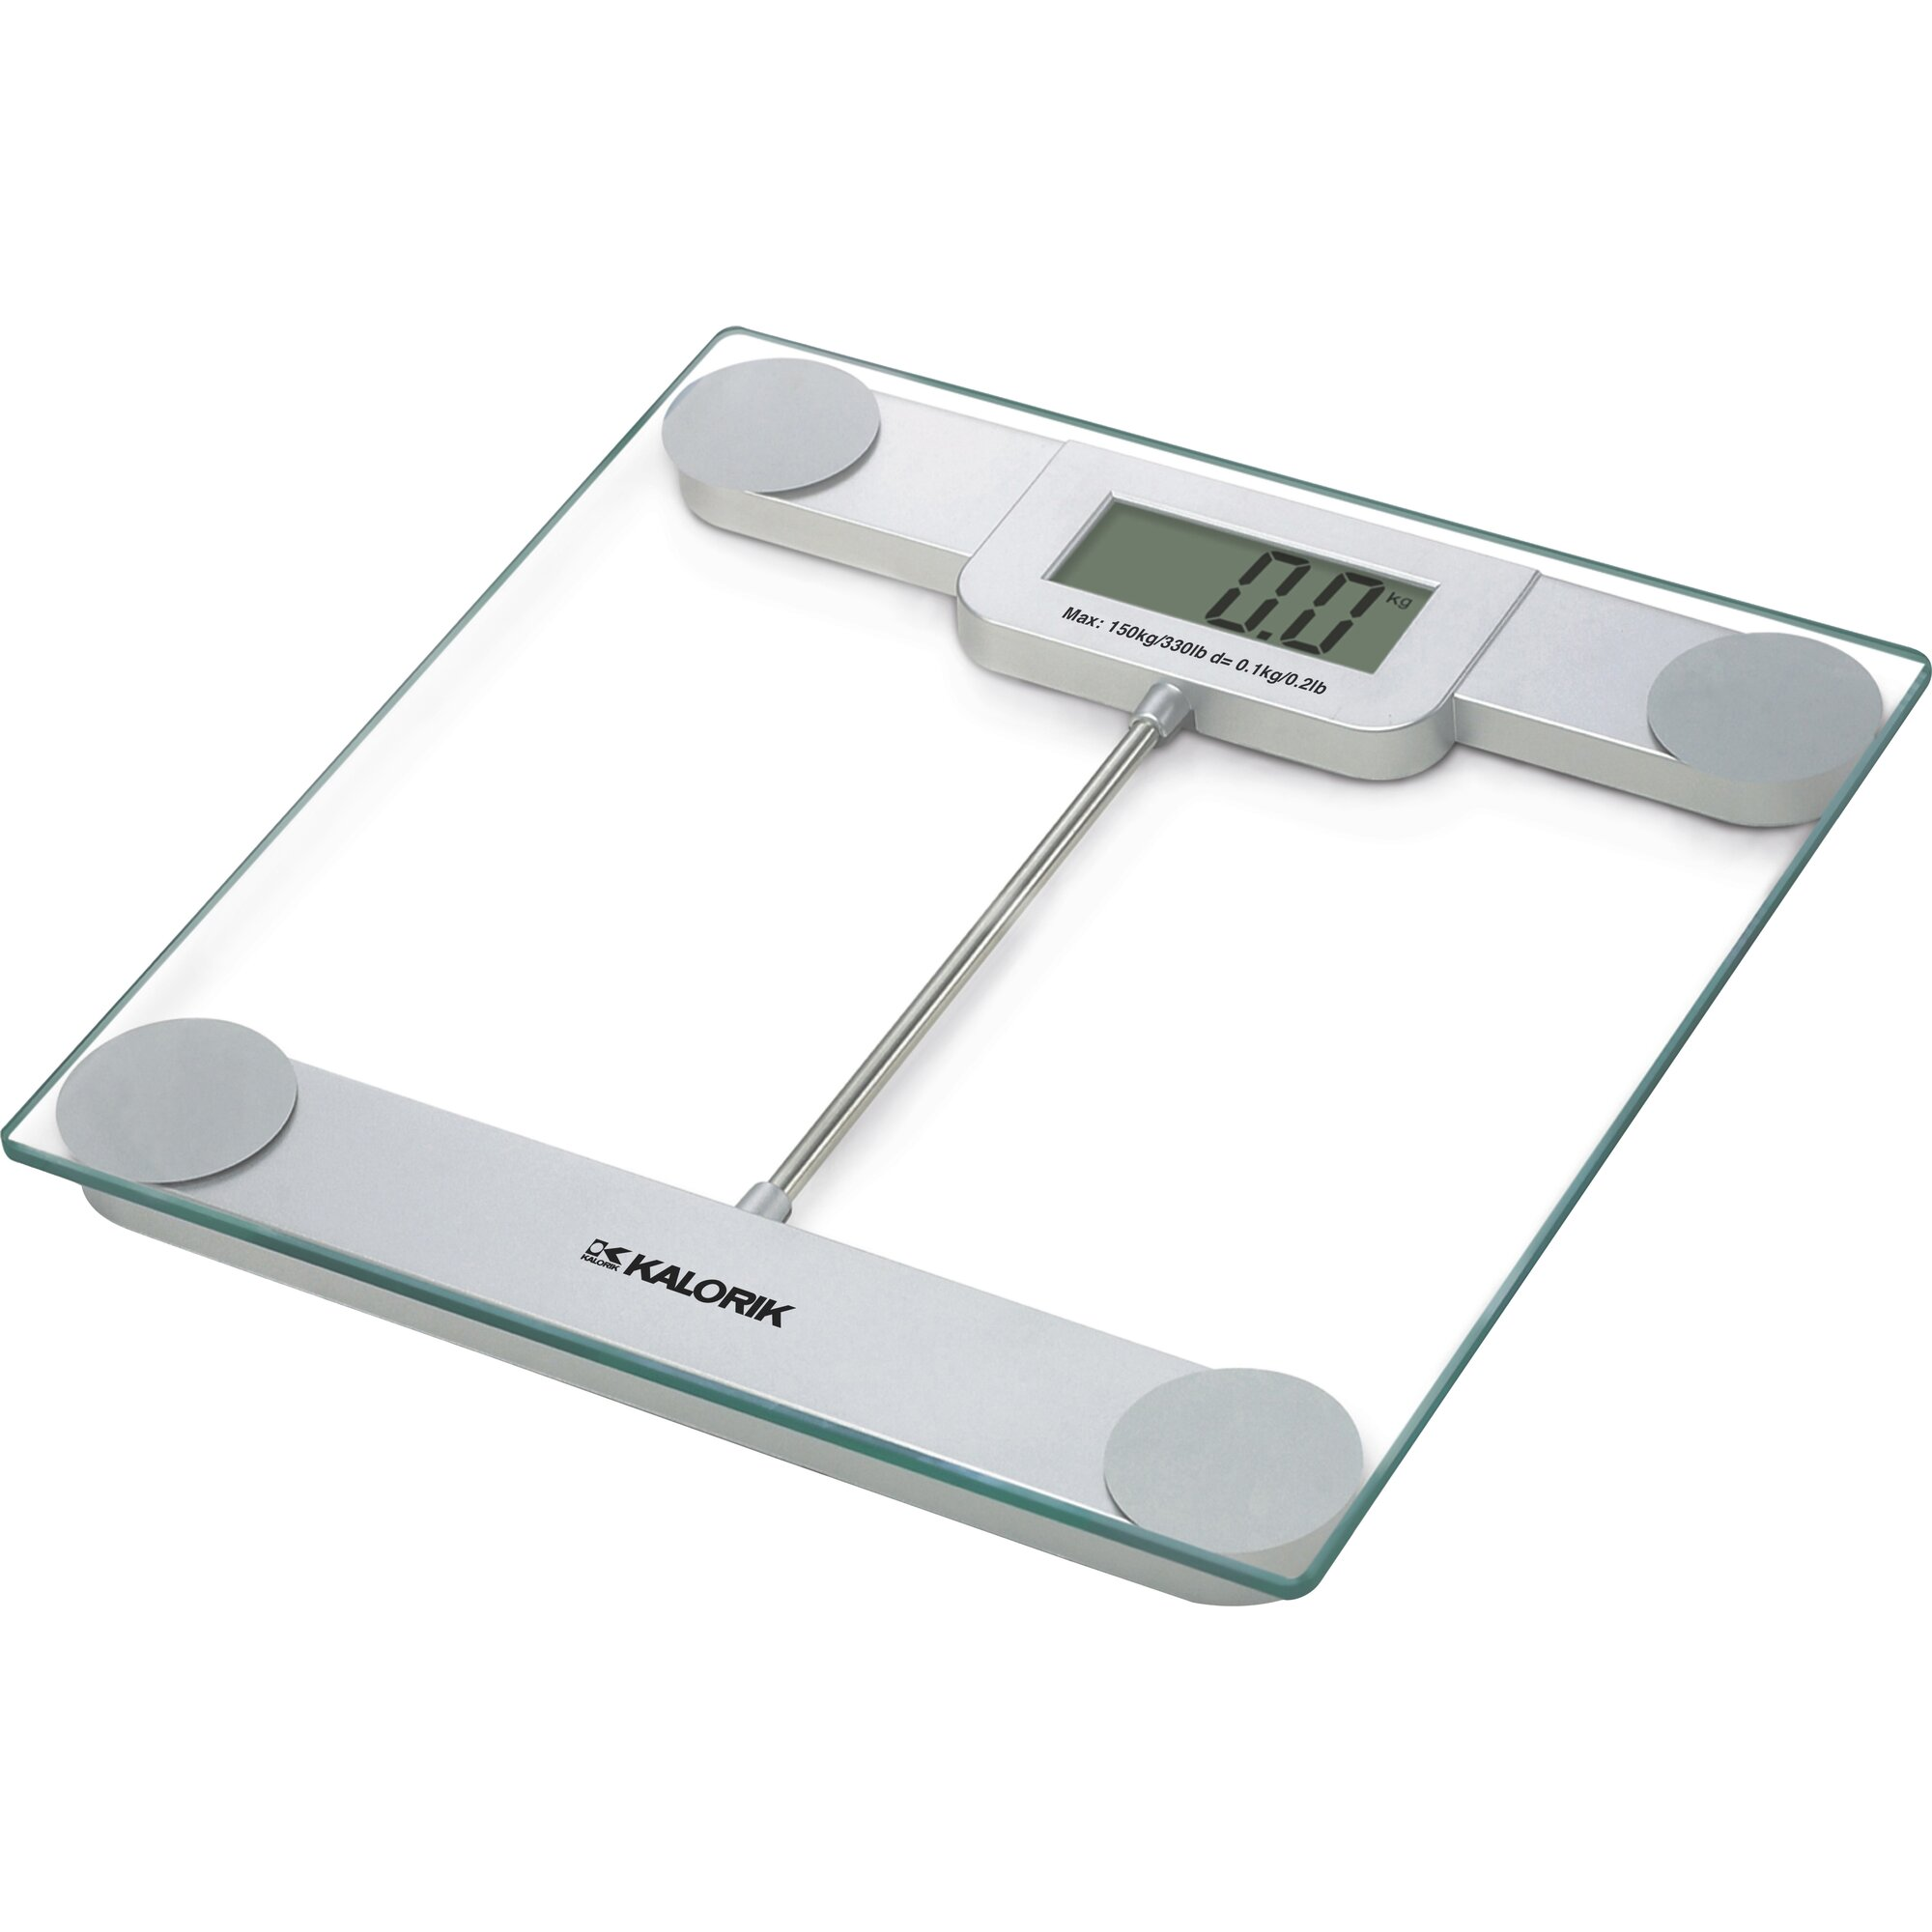 Bathroom Scale Ratings: Kalorik Precision Digital Glass Bath Scale & Reviews